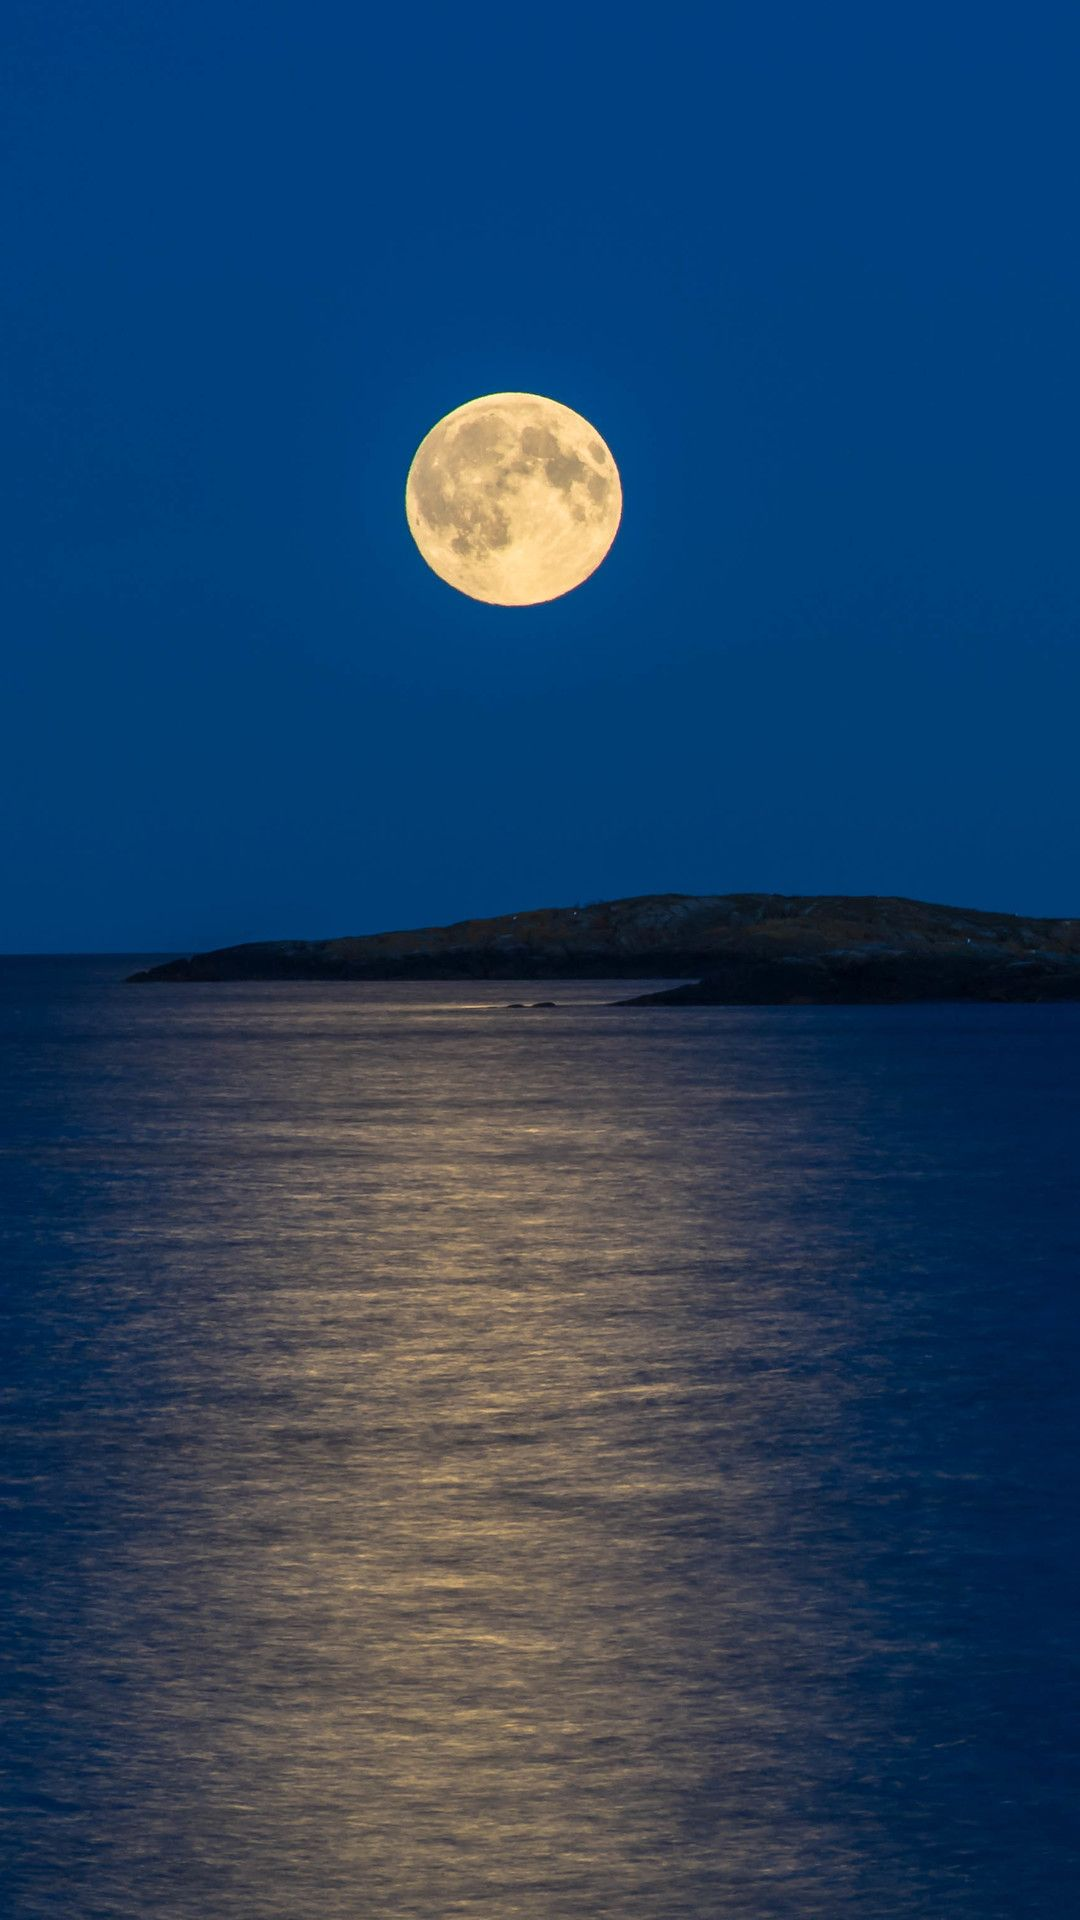 Moonlight Reflection In Sea In 1080x1920 Resolution Moonlight Reflection Moonlight Painting Beautiful Night Images